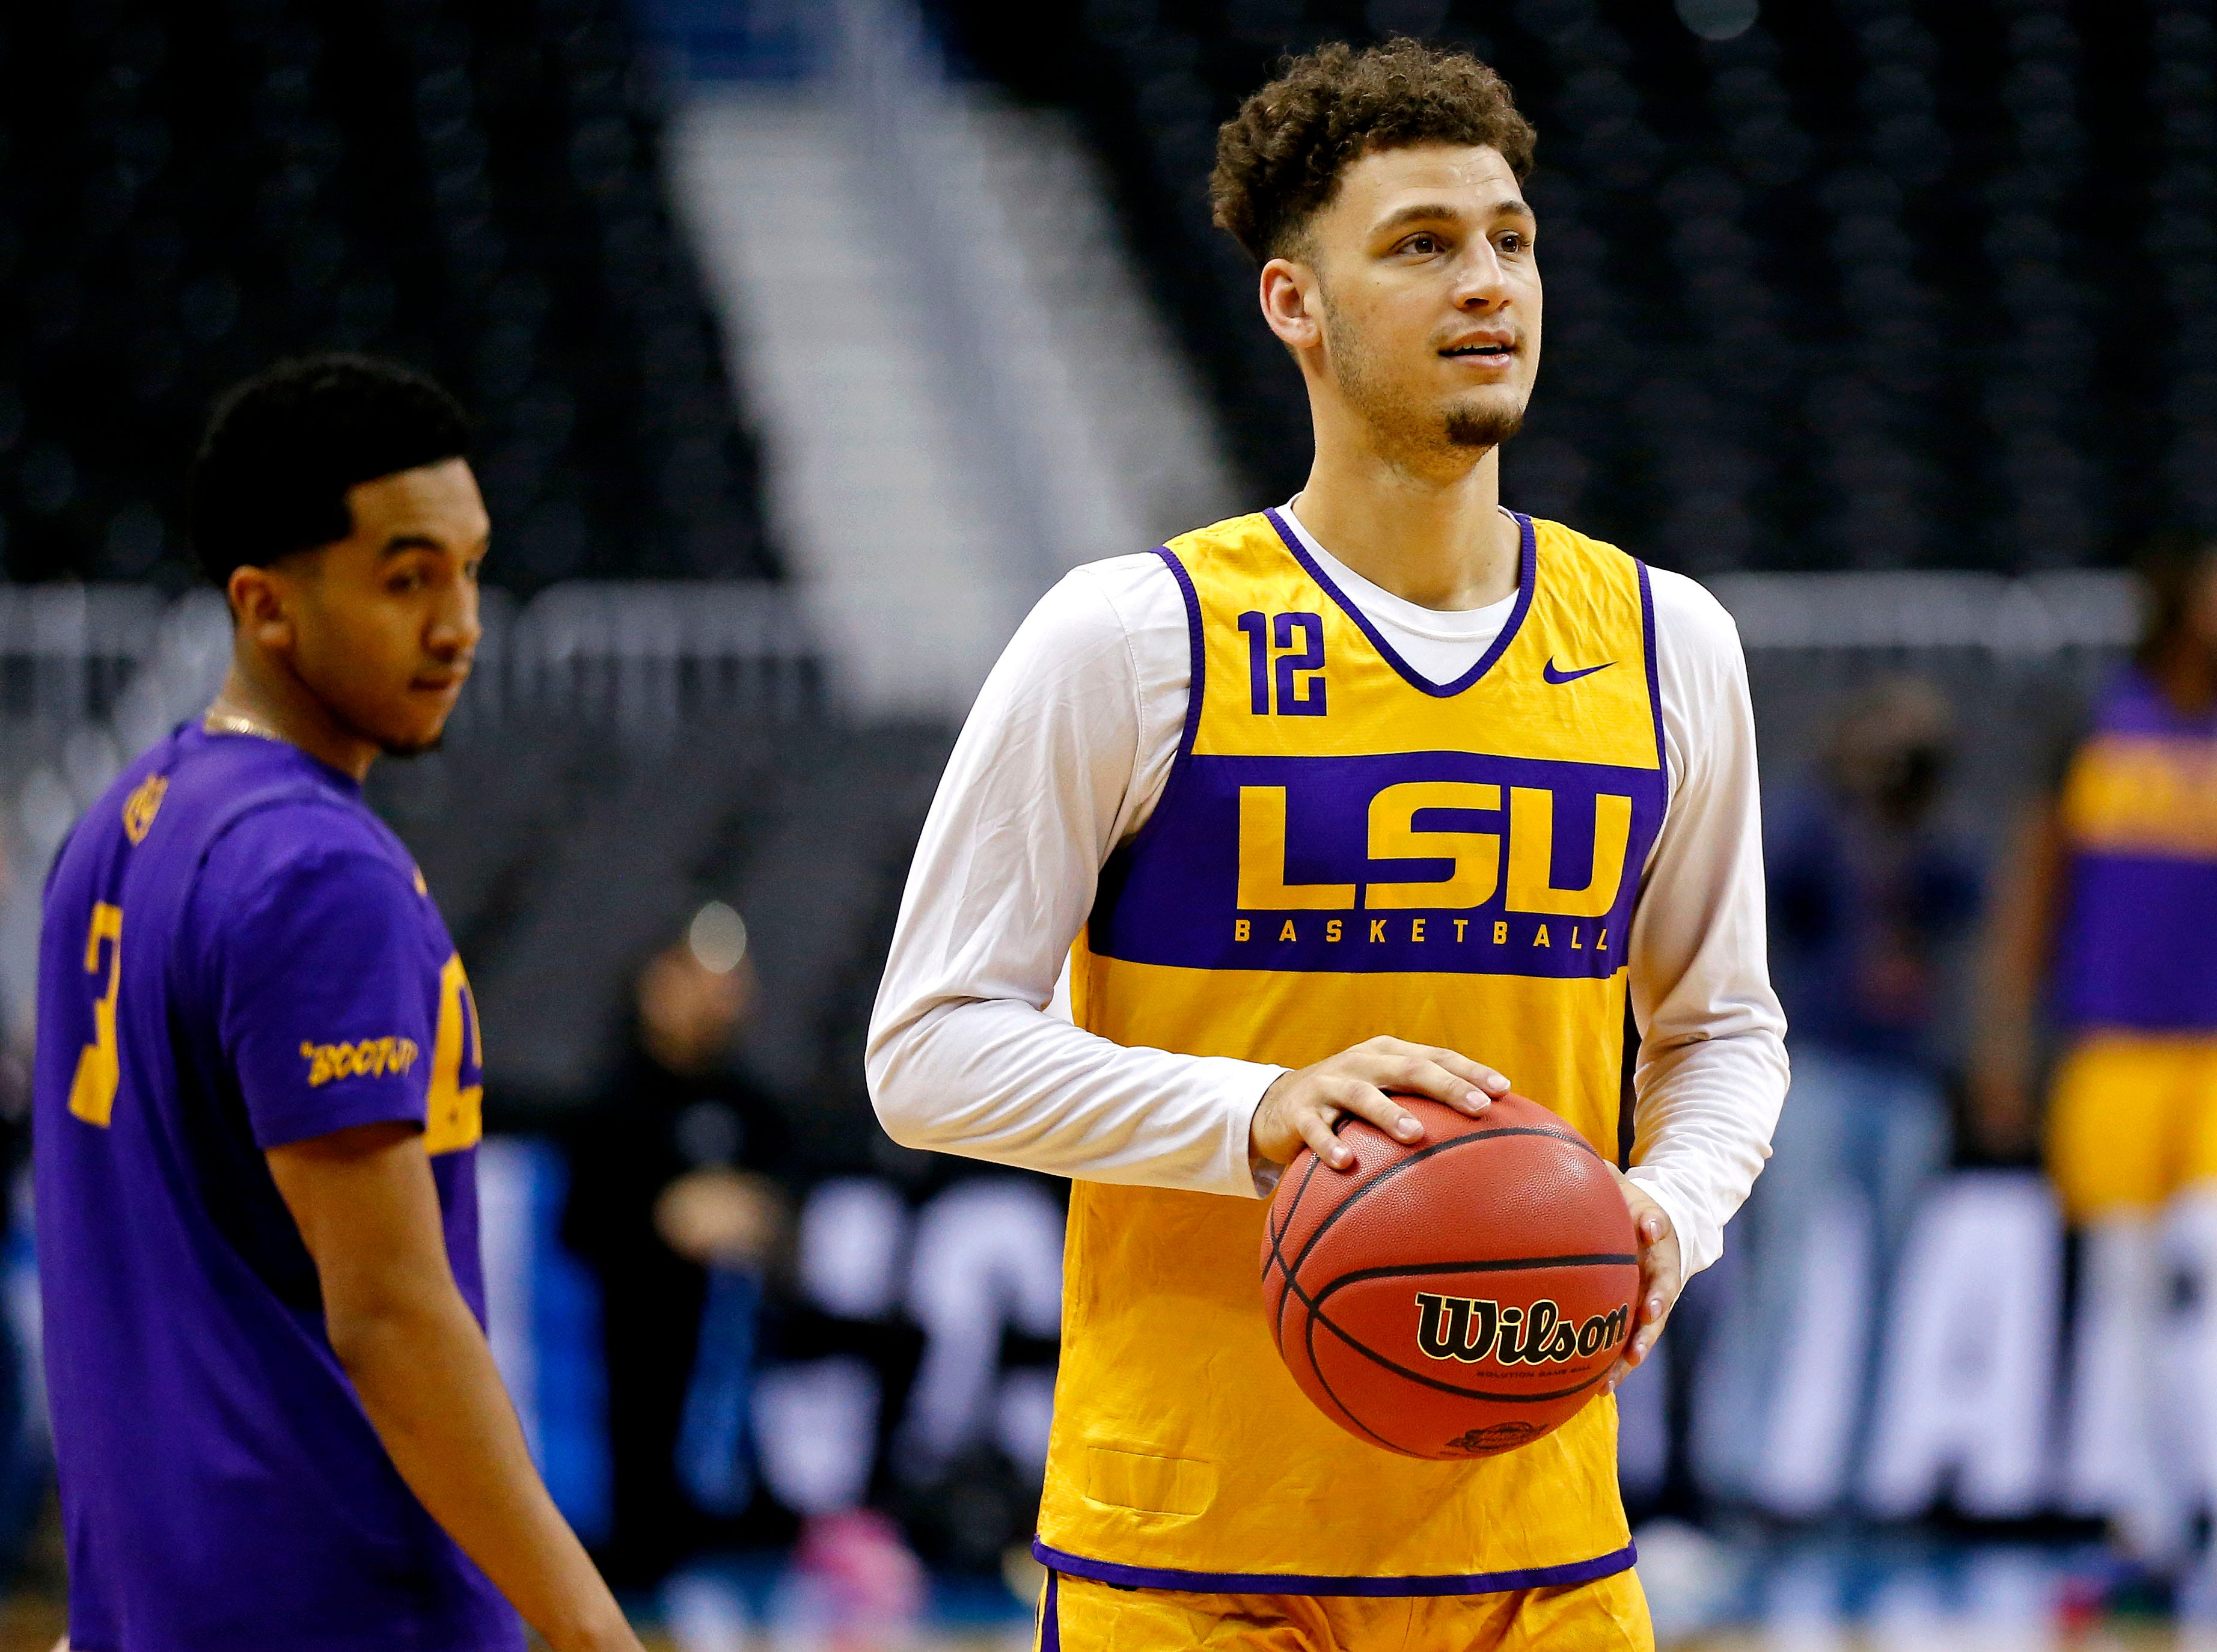 Mar 28, 2019; Washington, DC, USA; LSU Tigers guard Marshall Graves (12) shoots the ball during practice for the east regional of the 2019 NCAA Tournament at Capital One Arena. Mandatory Credit: Amber Searls-USA TODAY Sports